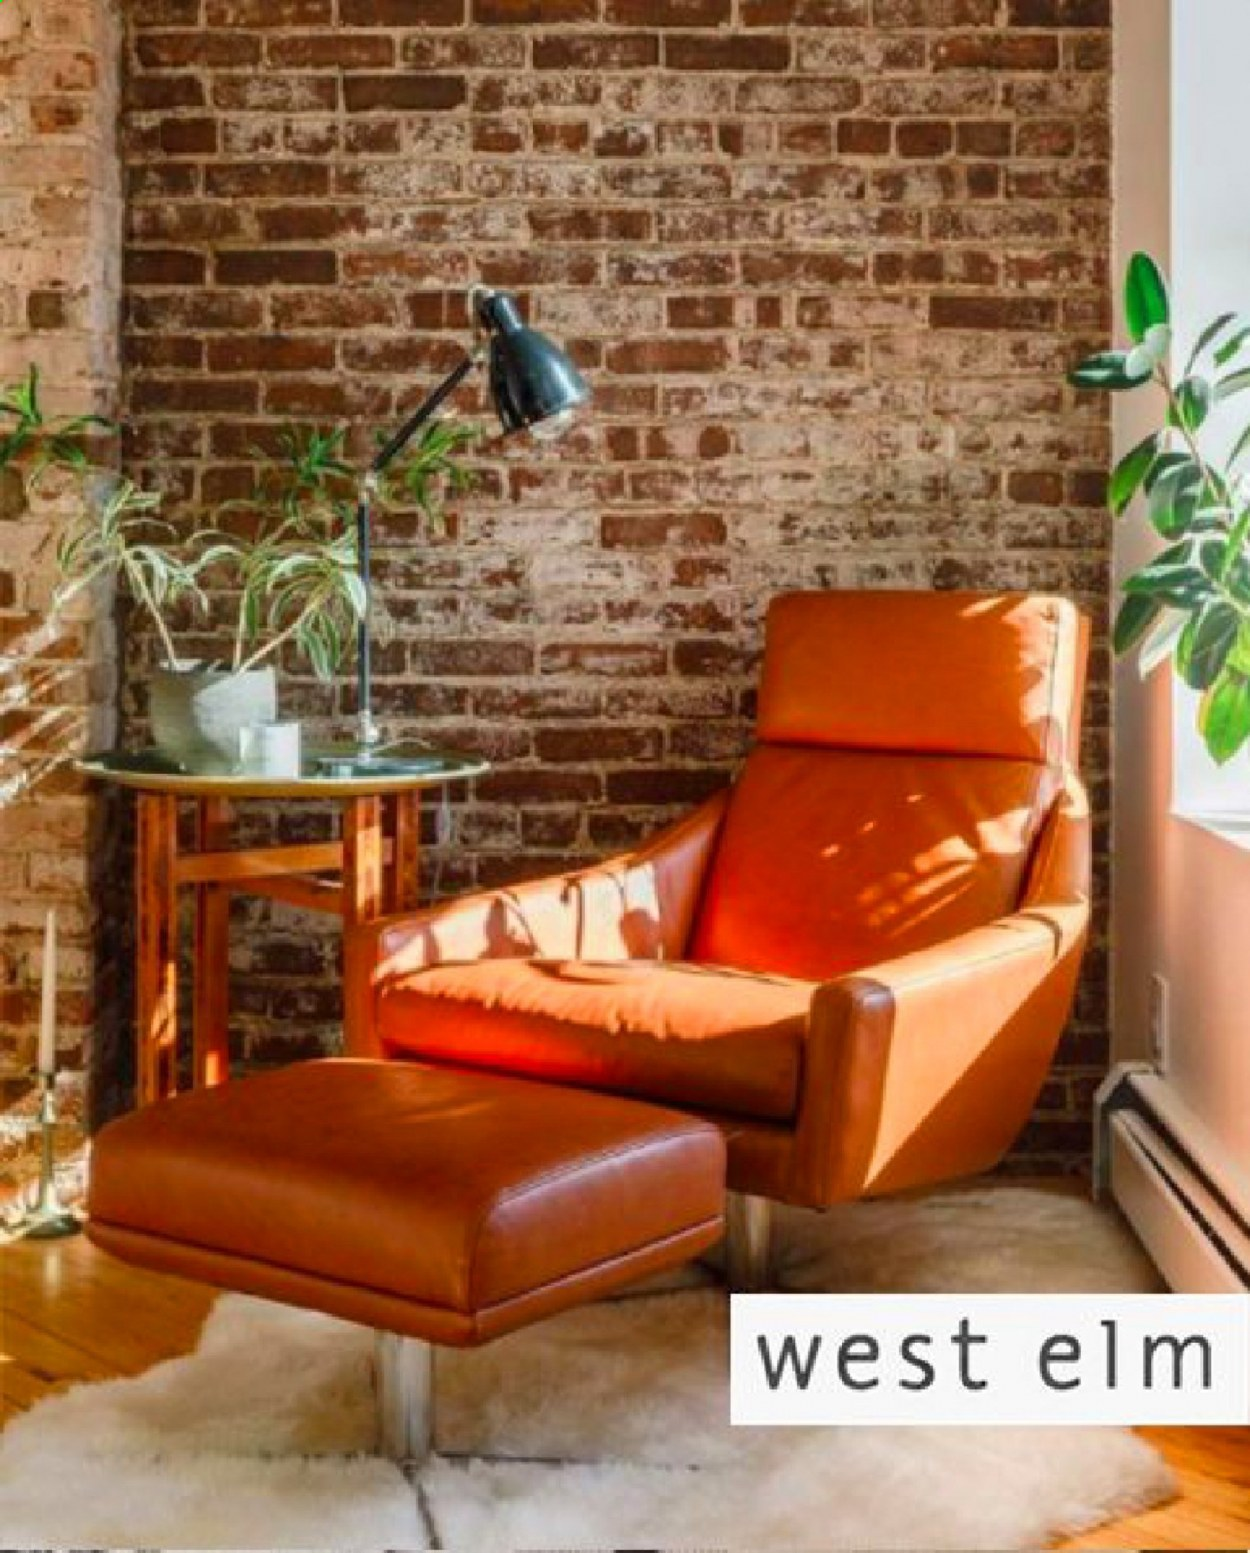 west elm offer . Page 1.